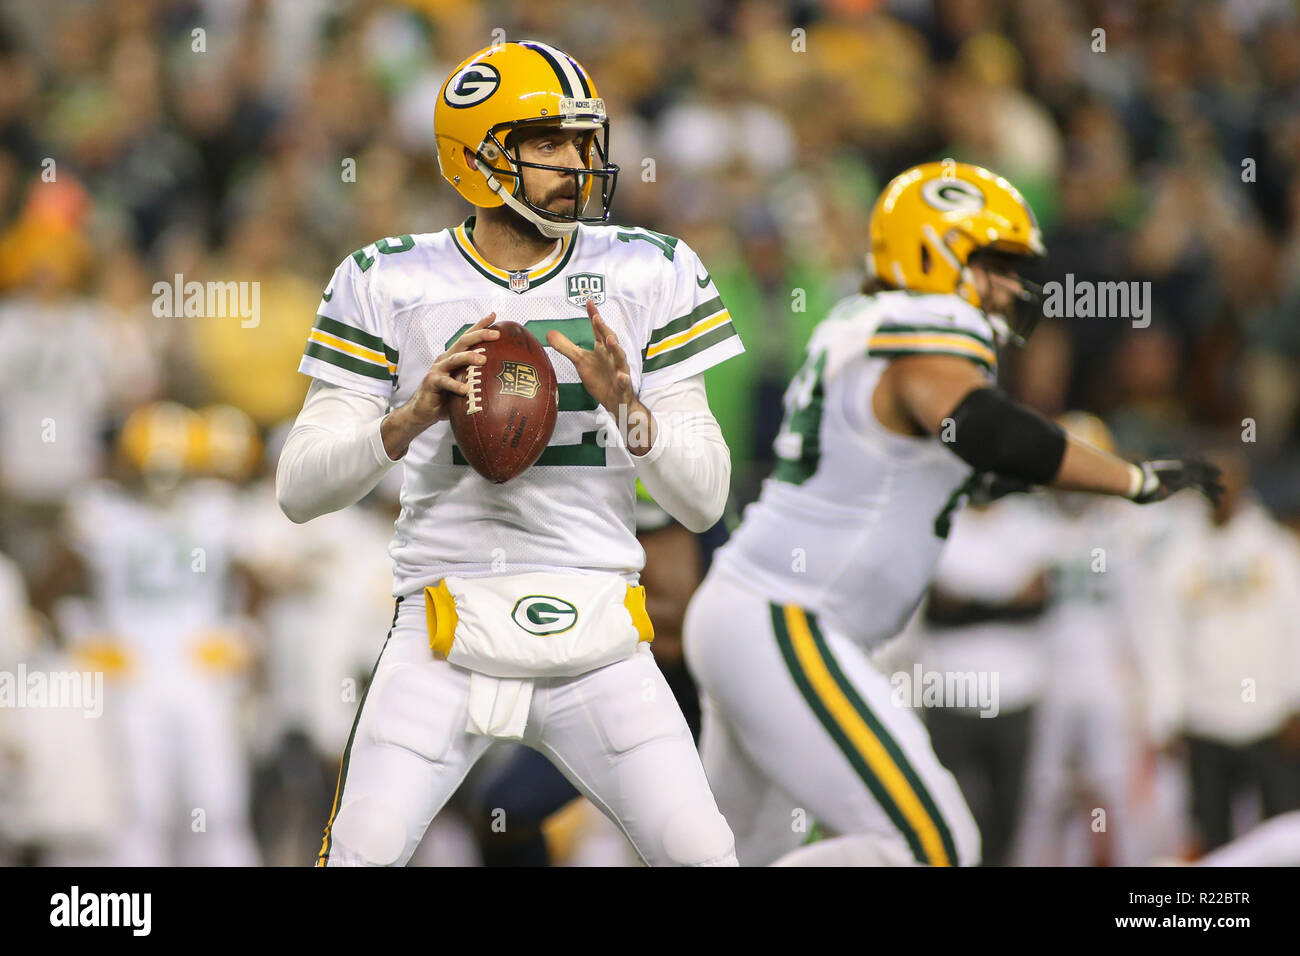 competitive price 326d3 a3506 Seattle, WA, USA. 15th Nov, 2018. Green Bay Packers ...